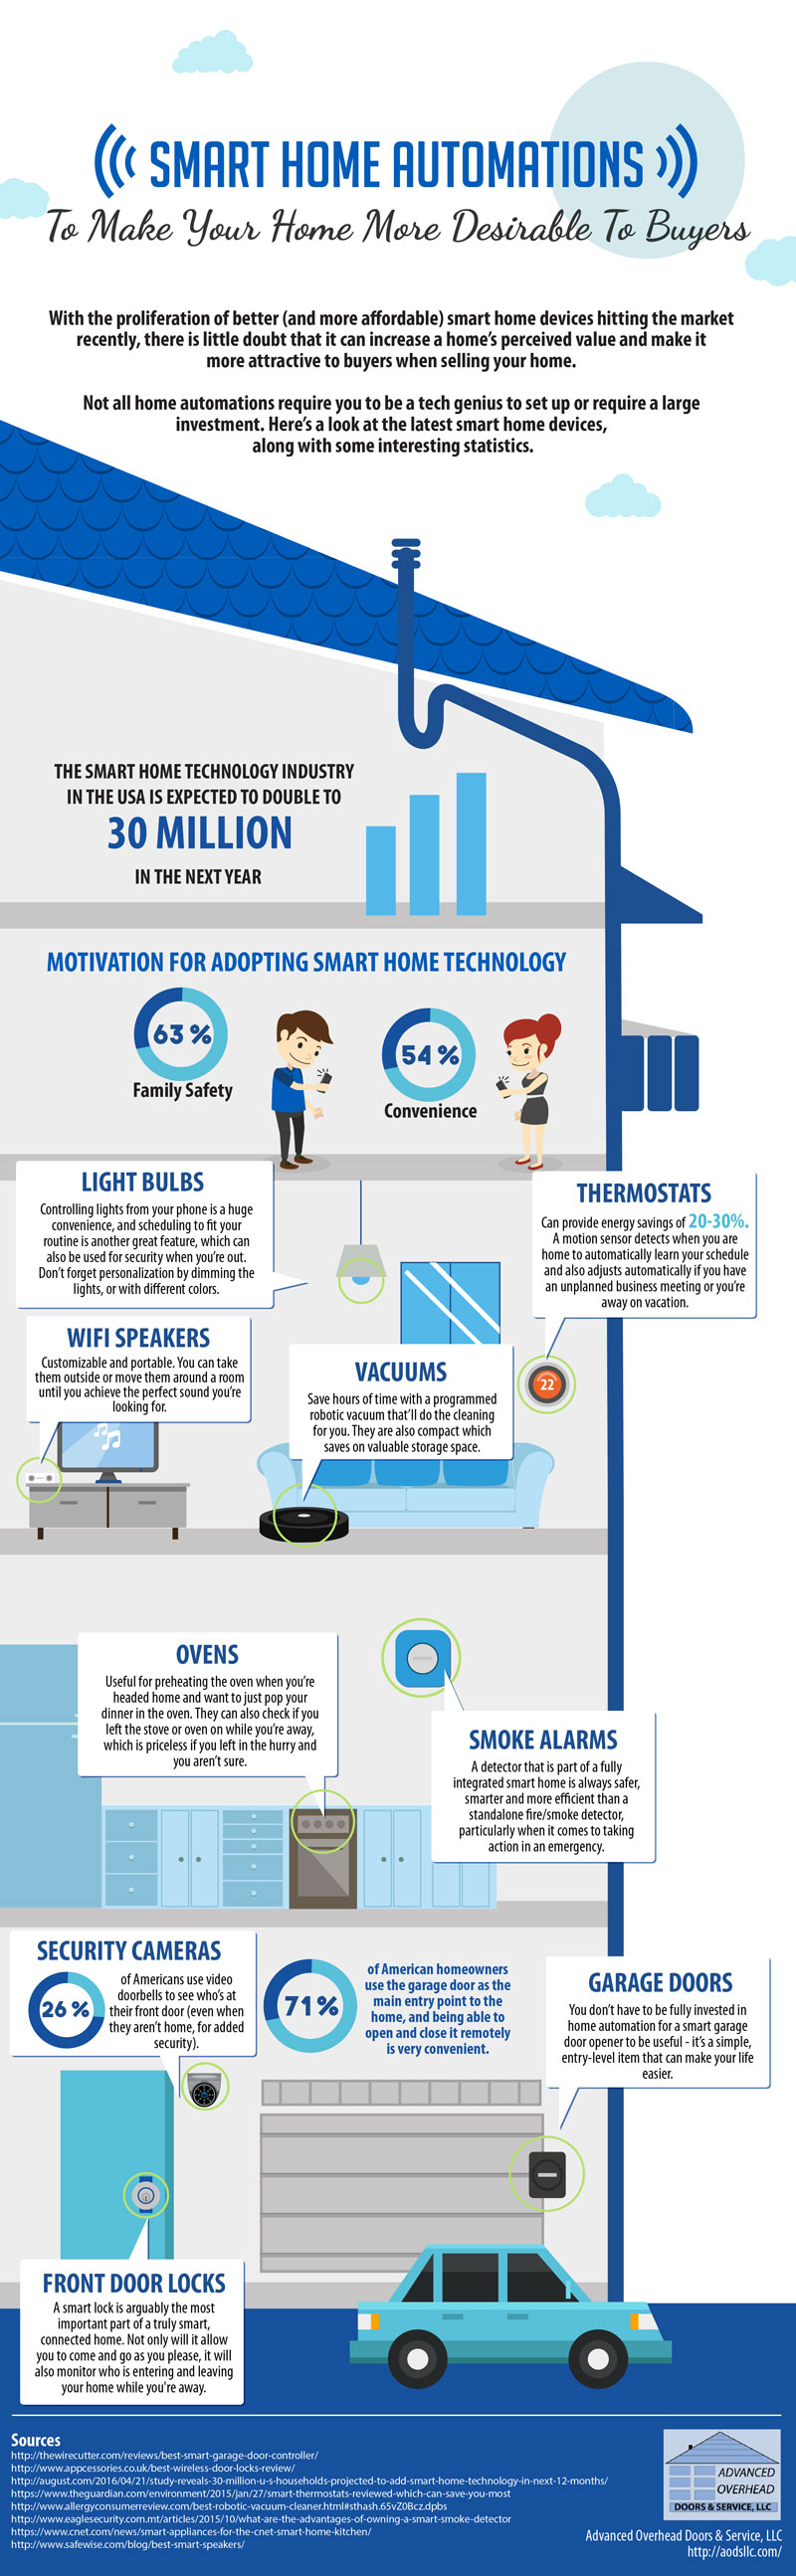 9 Smart Home Automations To Make Your Home More Marketable